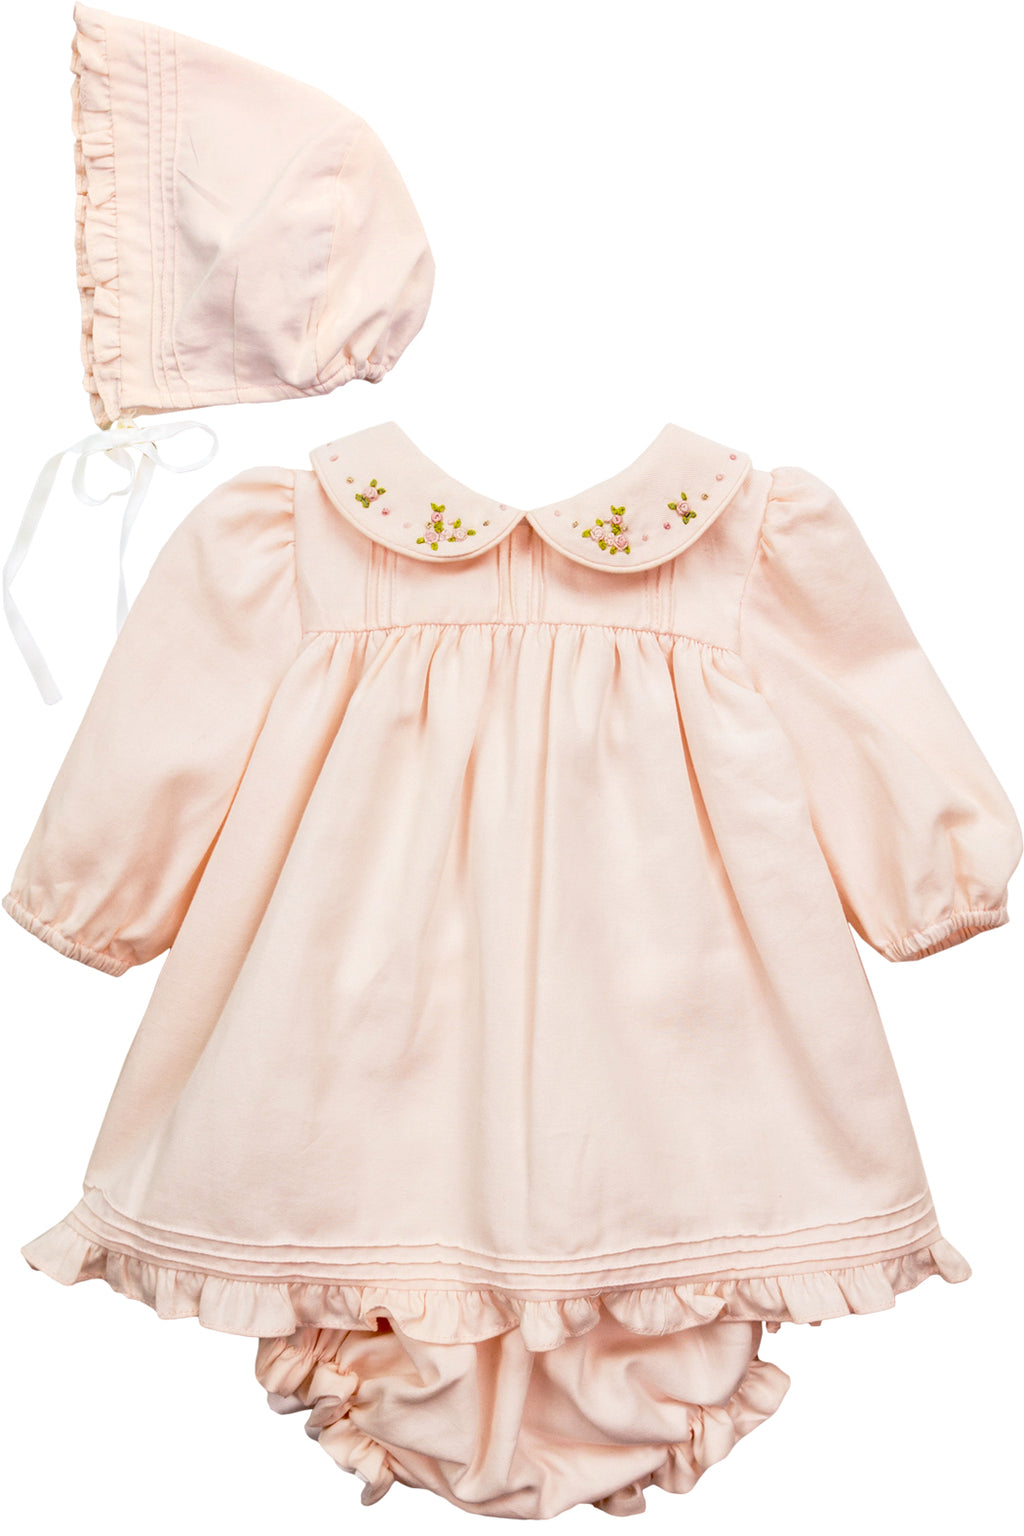 Winter Peach Dress w/ Bonnet & Bloomers